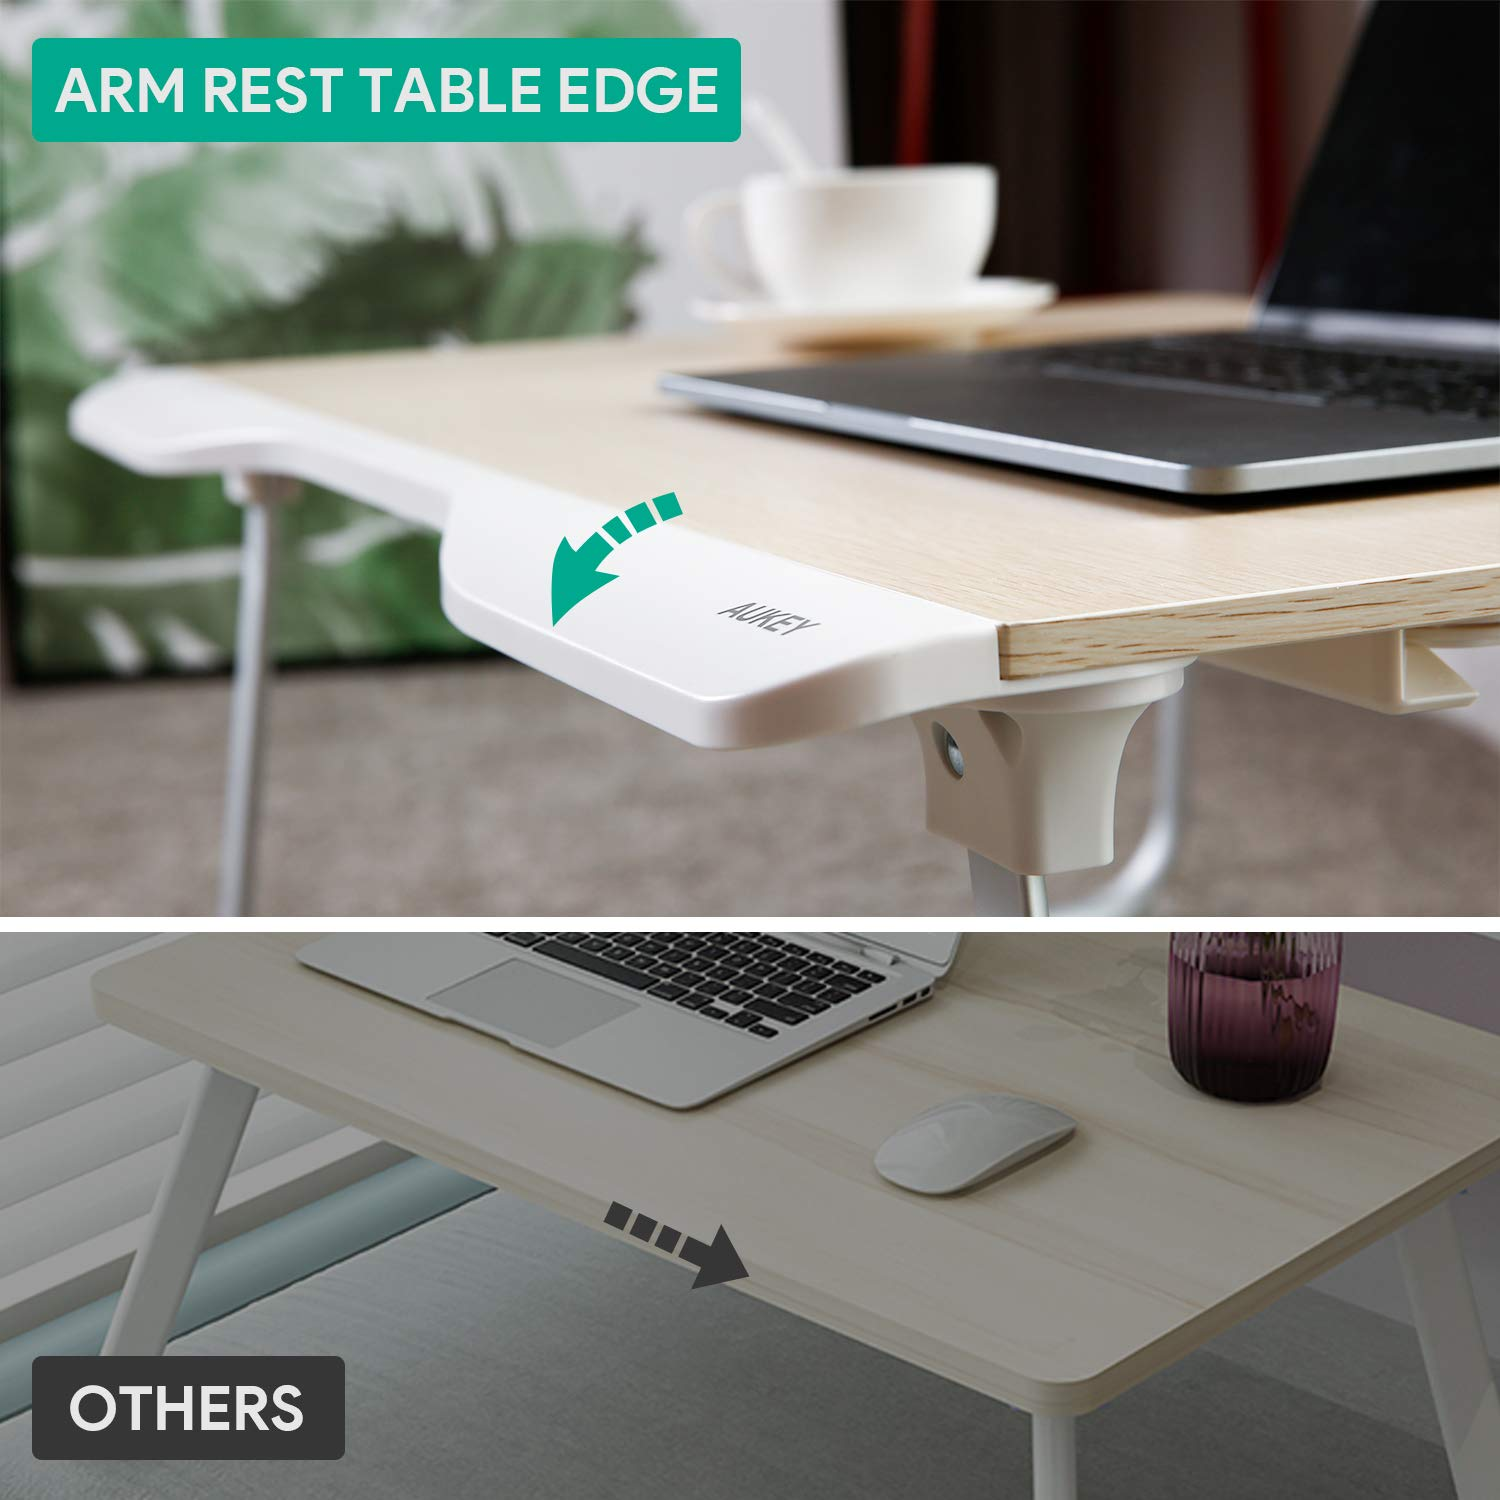 AUKEY Laptop Bed Table (Large Size) Foldable Portable Laptop Stand with Aluminum Alloy Legs, Book Stand and Drawer for Reading, Writing, and Working by AUKEY (Image #2)